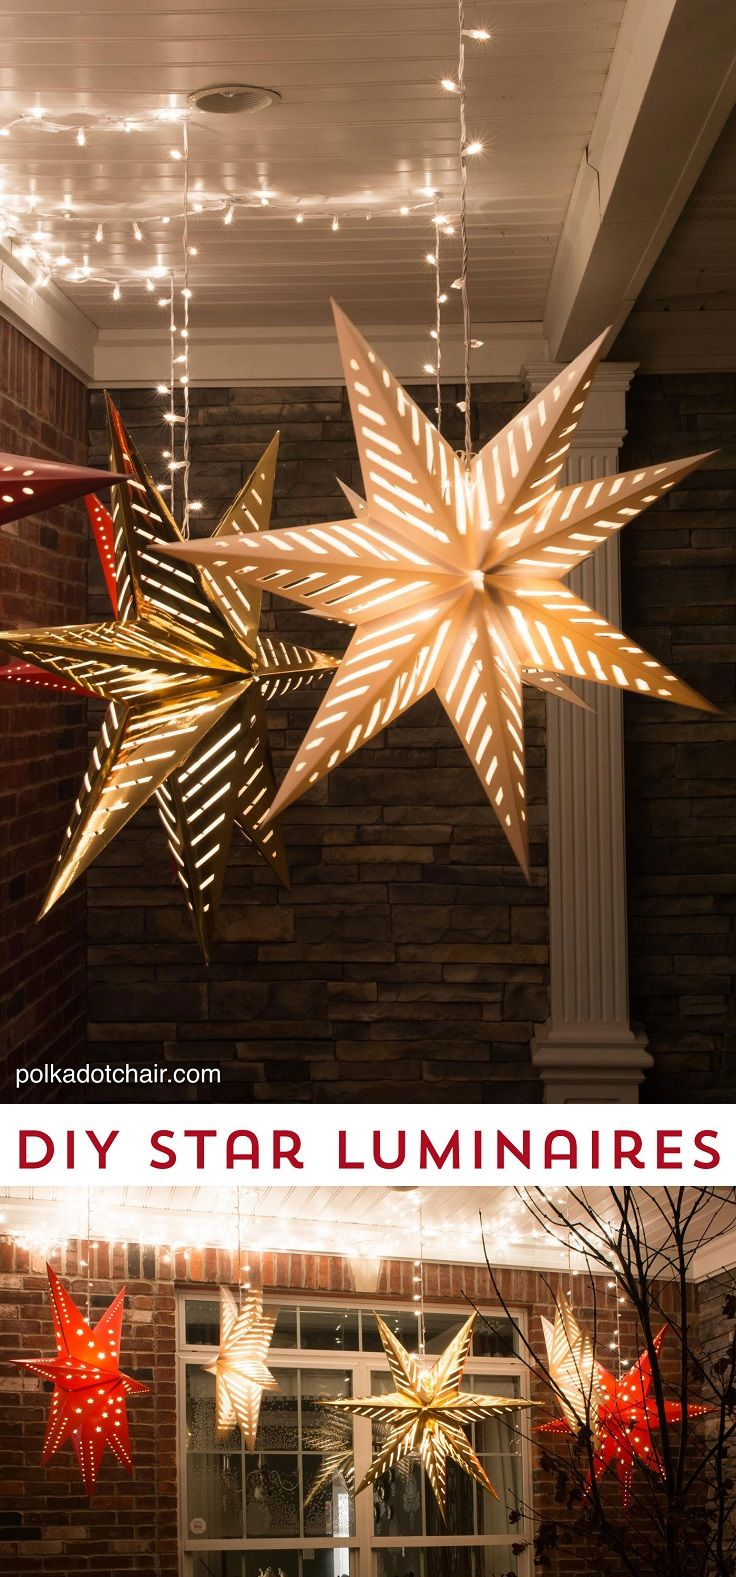 How to hang christmas lights - Hanging Star Lanterns Christmas Front Porch Decor Idea 13 Magical Indoor And Outdoor Christmas